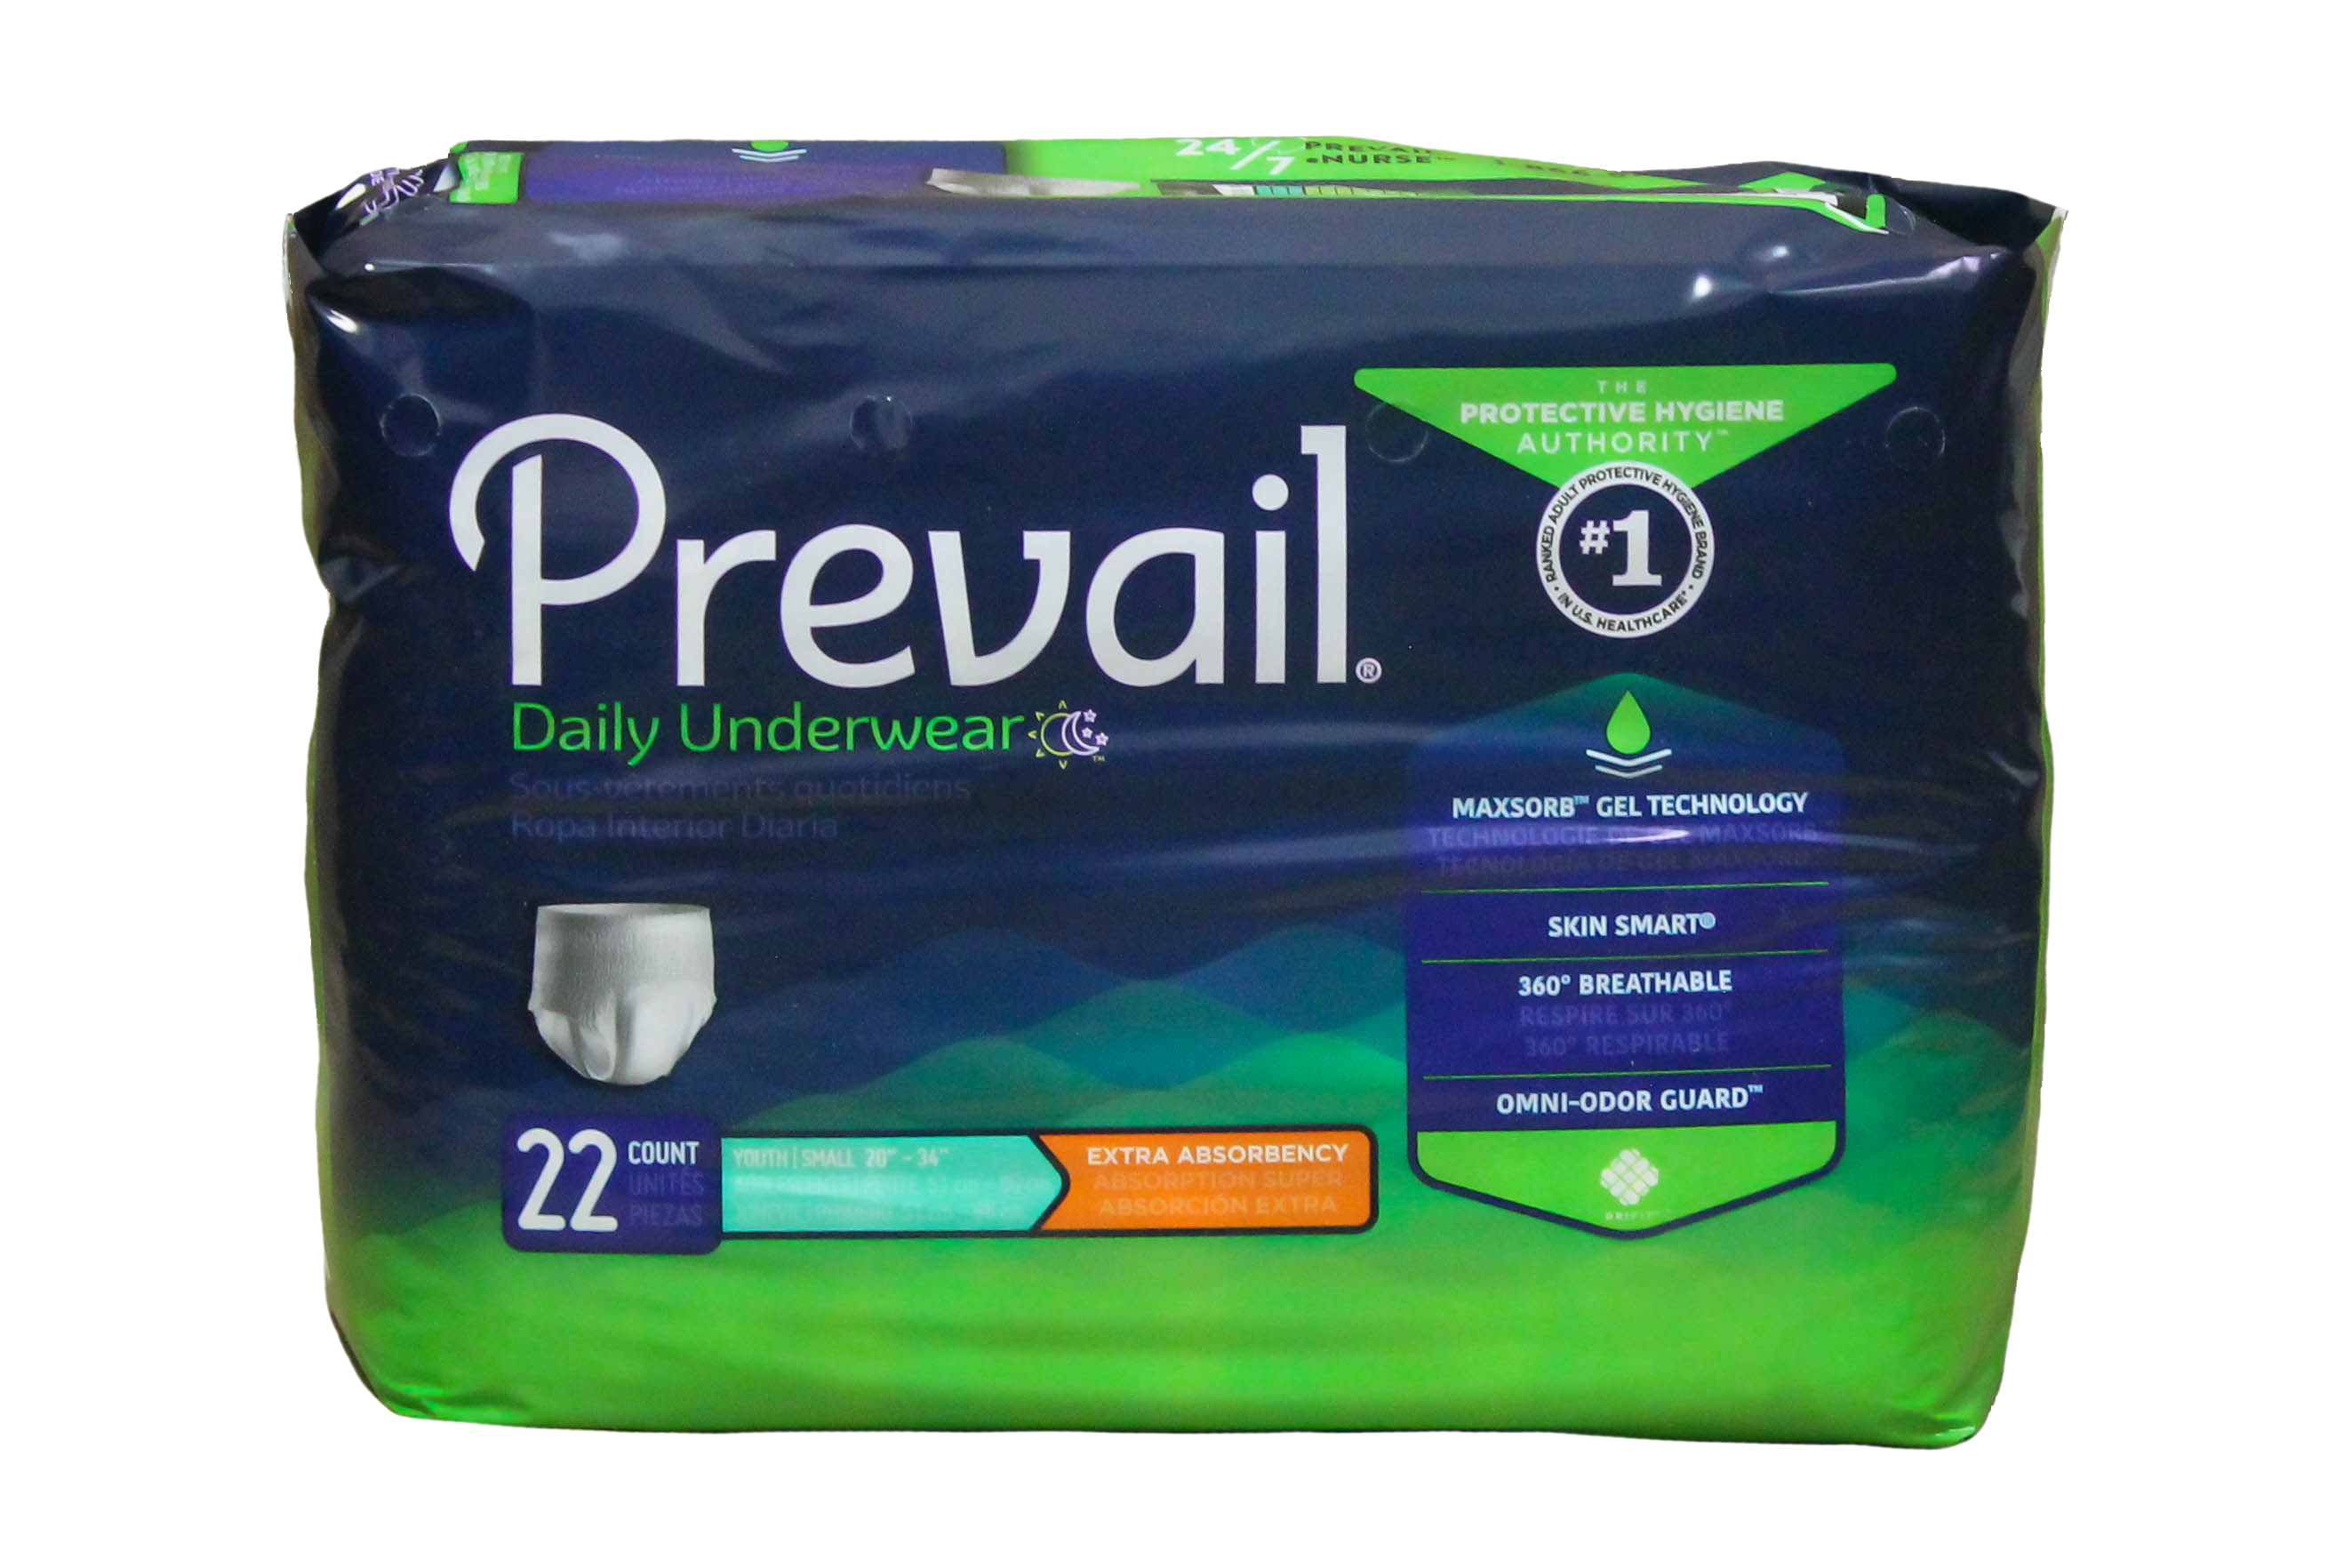 Prevail Daily Underwear